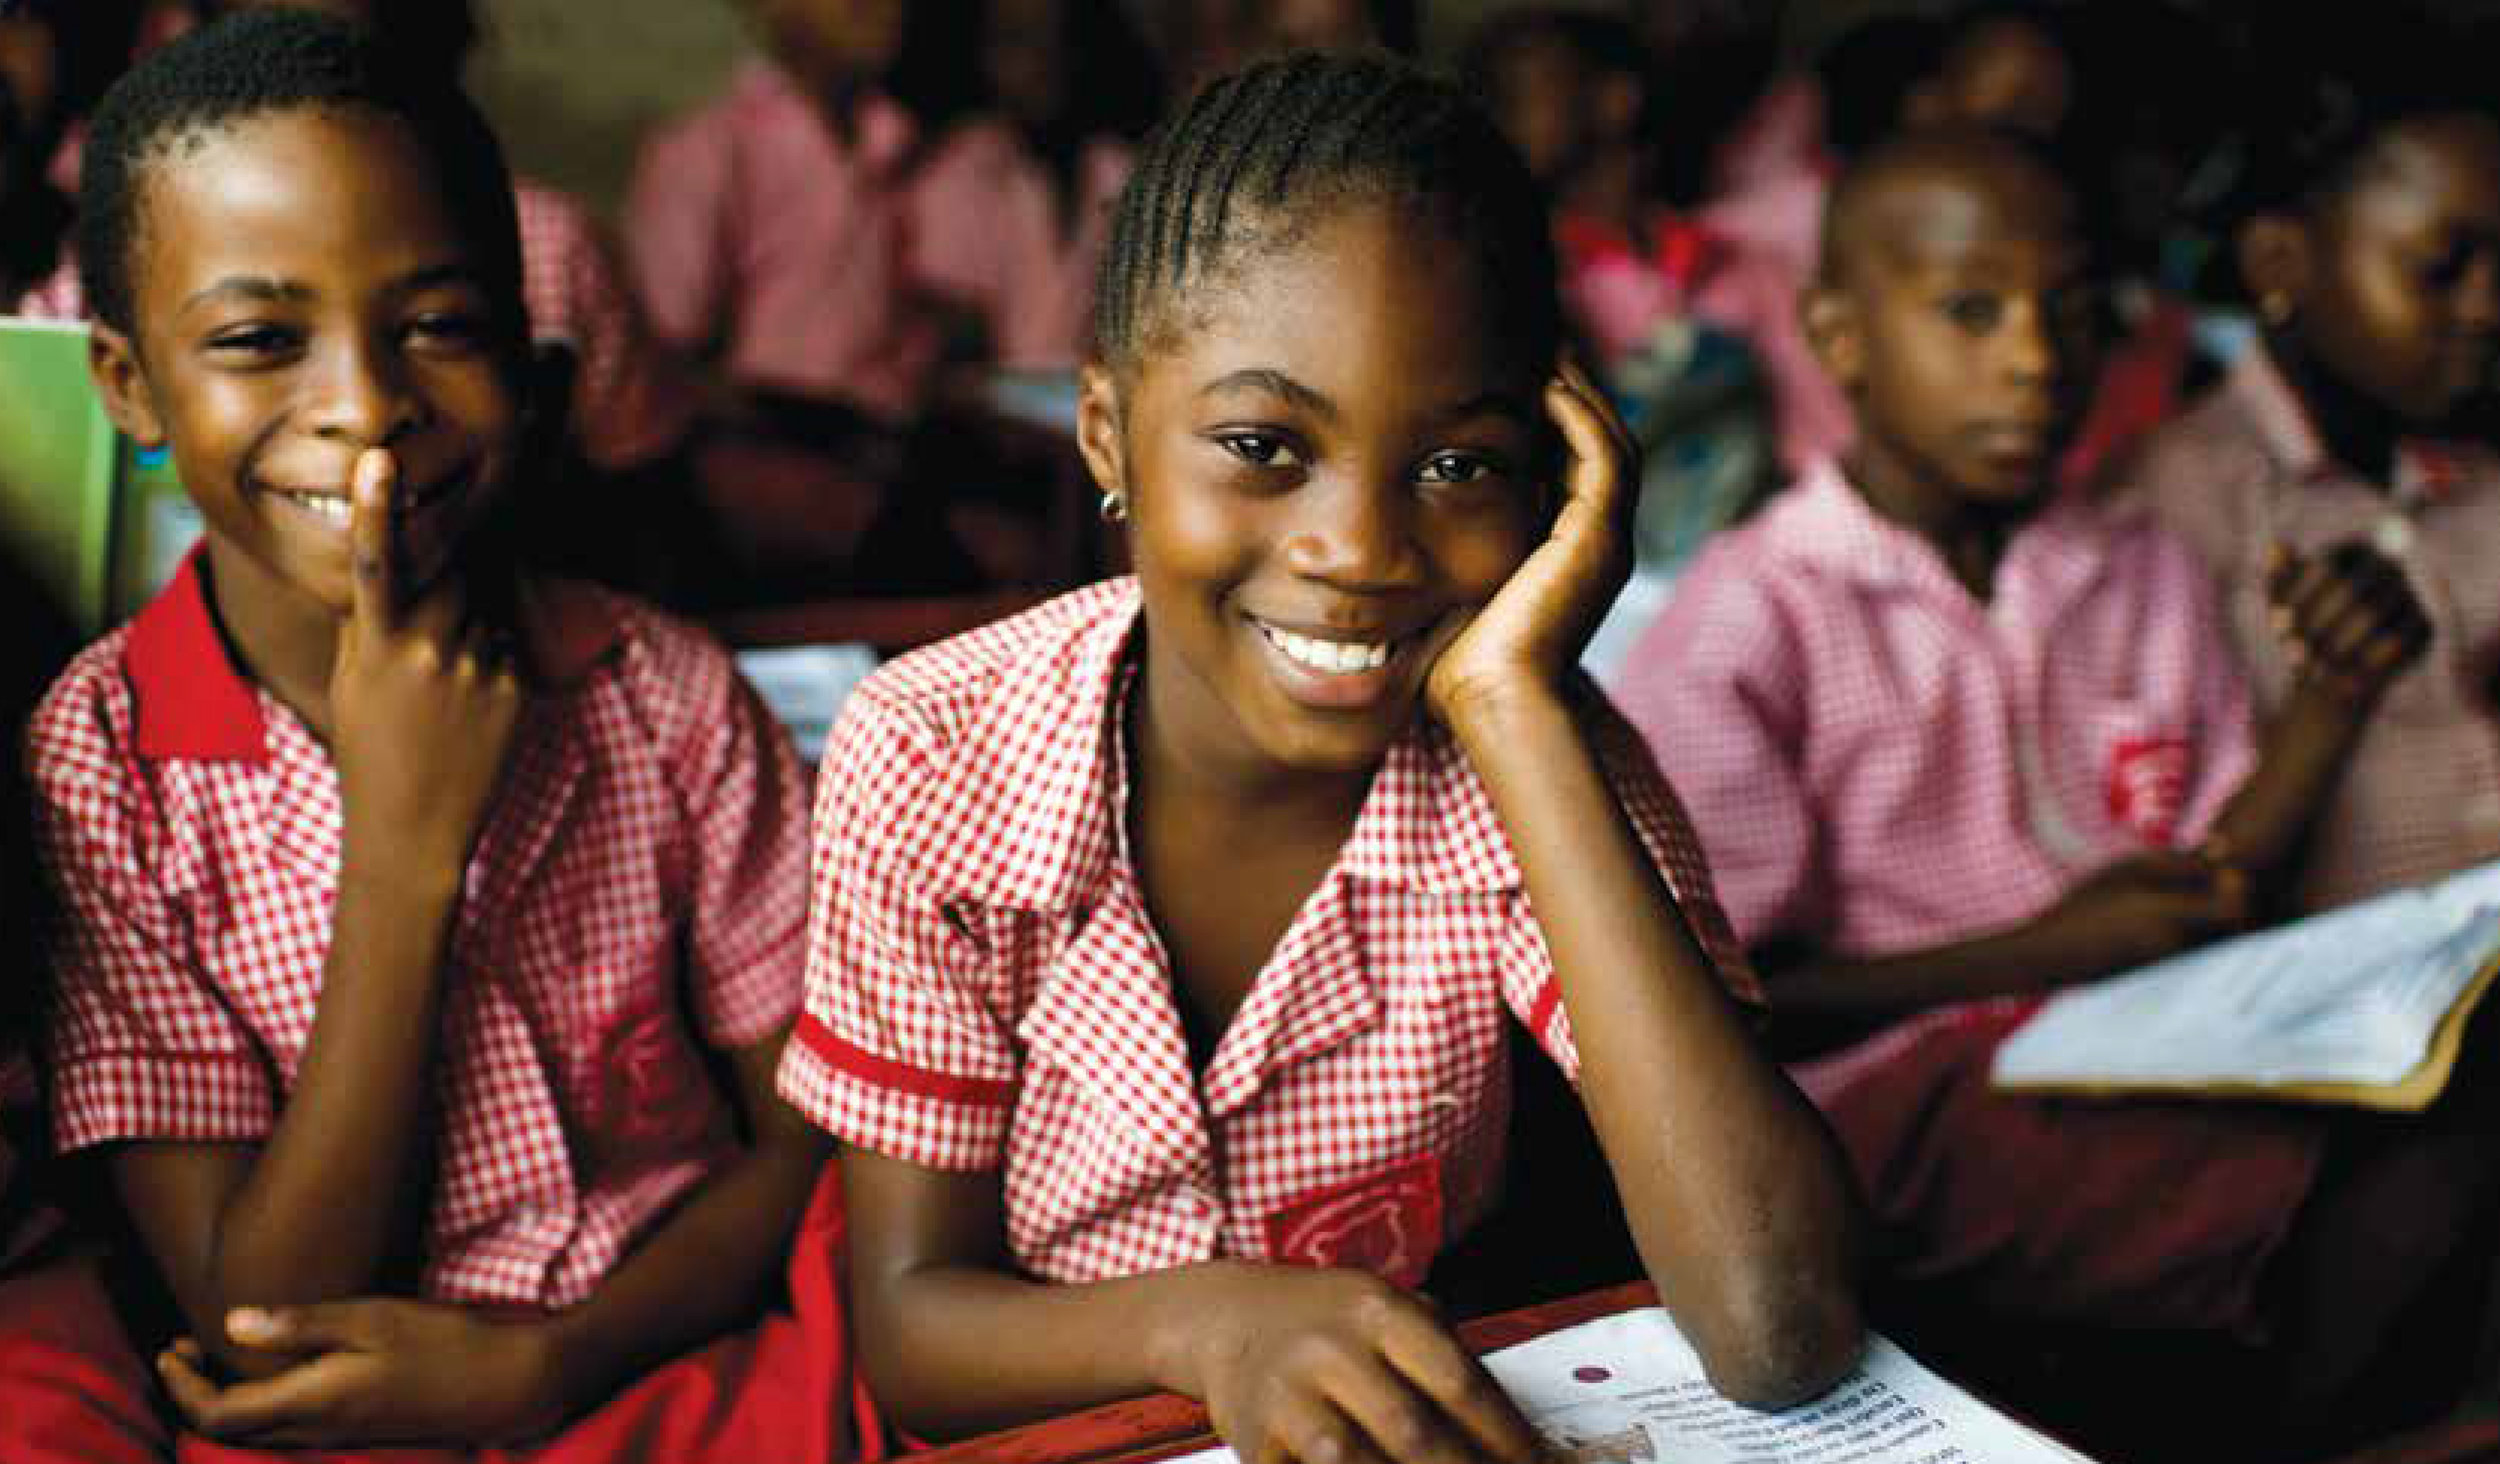 20% of Girls - JUST 1 IN 5 GIRLS WILL RECEIVE AN EDUCATION IN SIERRA LEONE IN 2019. IN UGANDA, IT IS 4 IN 5. ONLY 16% OF GIRLS COMPLETE HIGH SCHOOL, YET A WOMAN'S INCOME WILL INCREASE BY 10-25% FOR EVERY YEAR OF SCHOOL SHE RECEIVES.